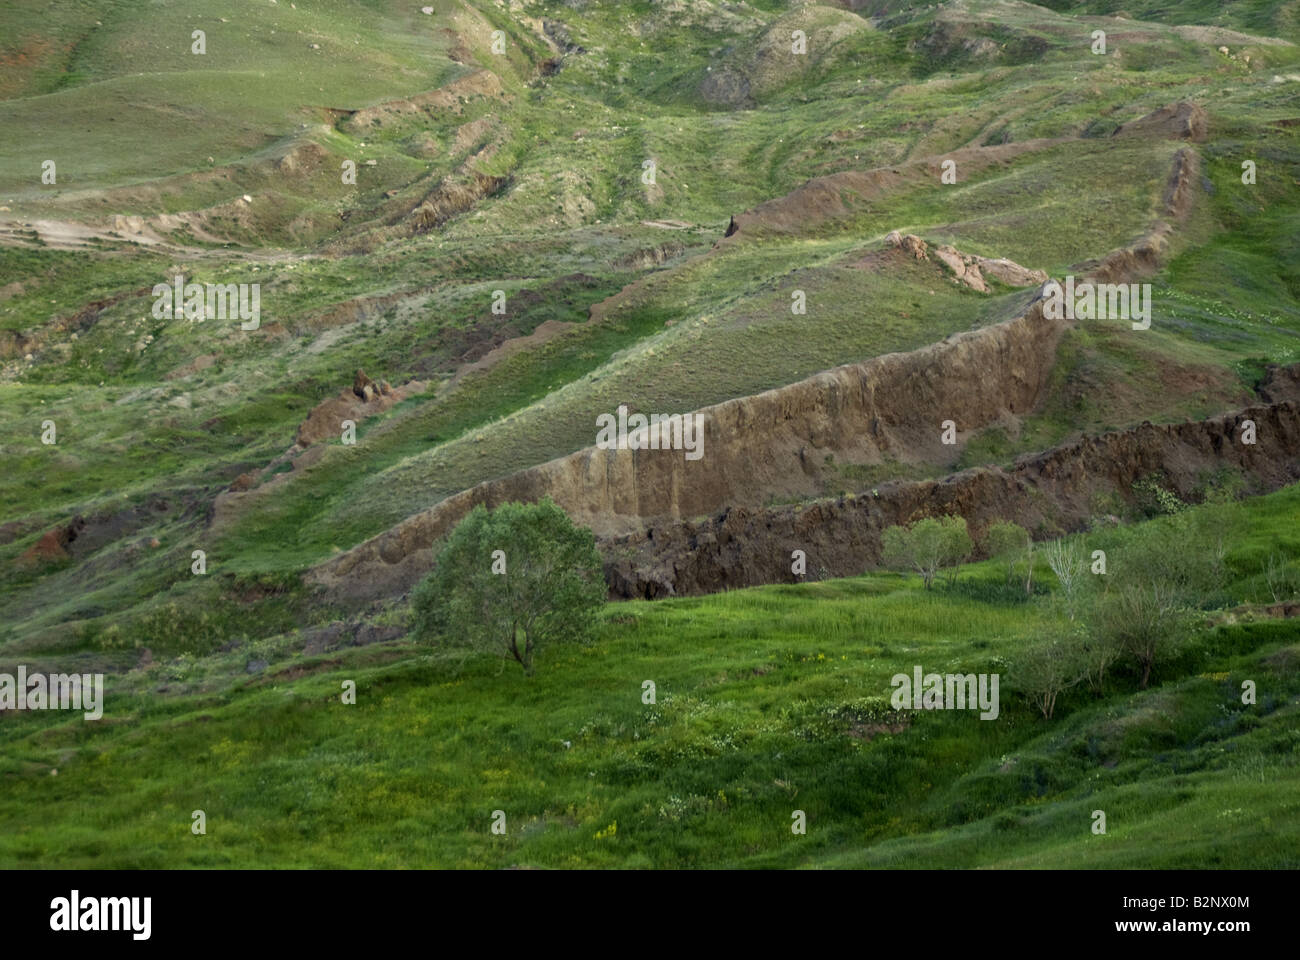 Noah's Ark, reputed final resting site with boat shaped rock formation at Noah's Ark National Park - Stock Image